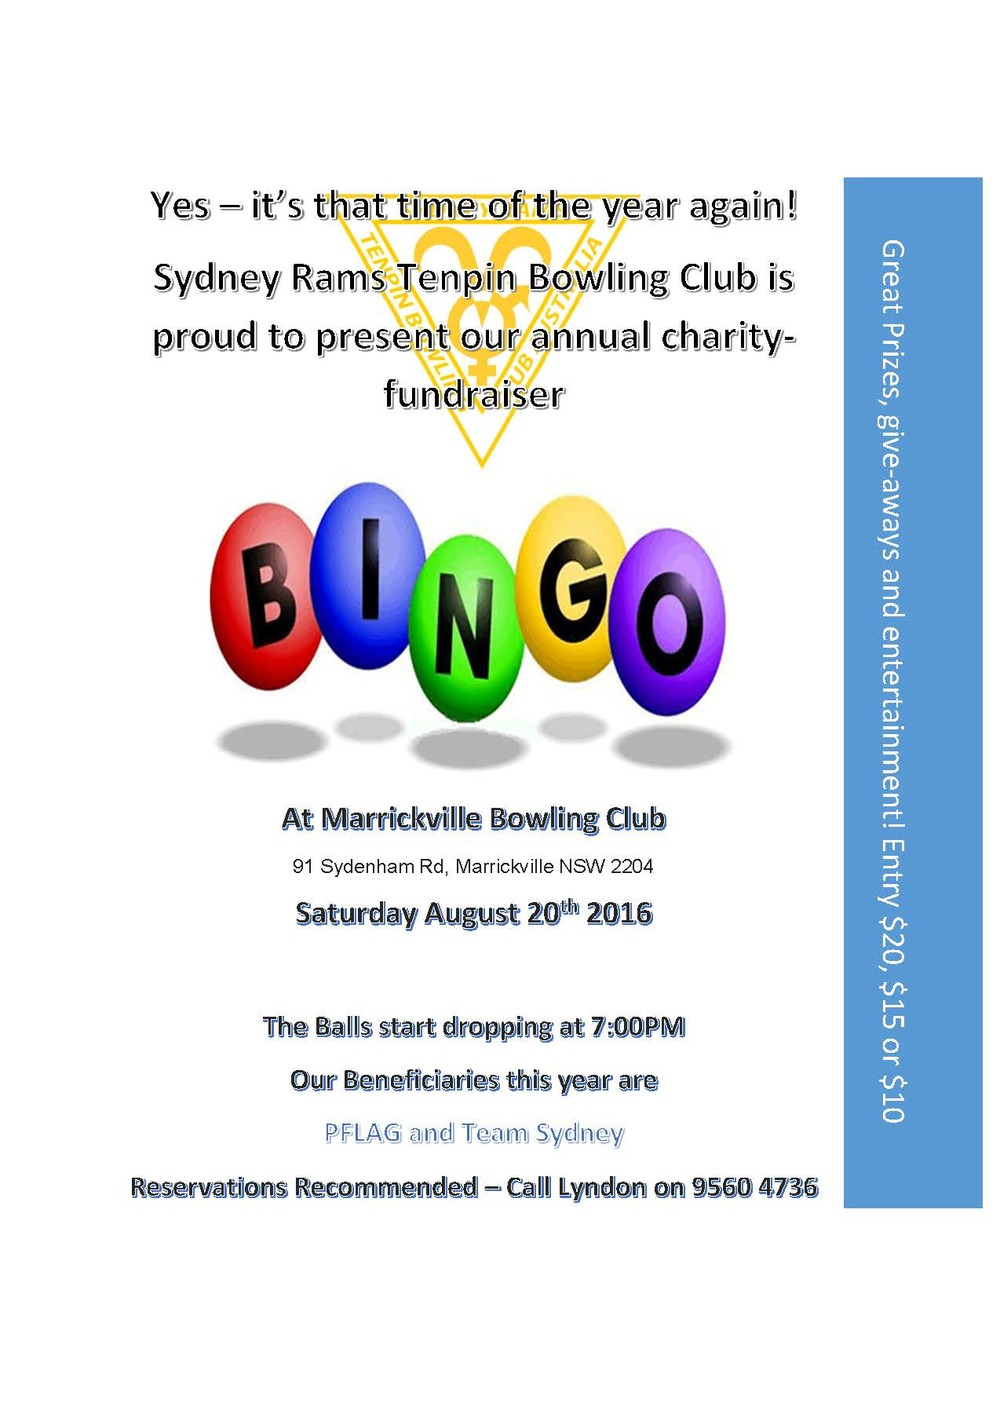 Please come along and support this great fundraiser! PFLAG NSW thanks Sydney RAMS for their ongoing support and including us as a beneficiary in this year's fundraiser.